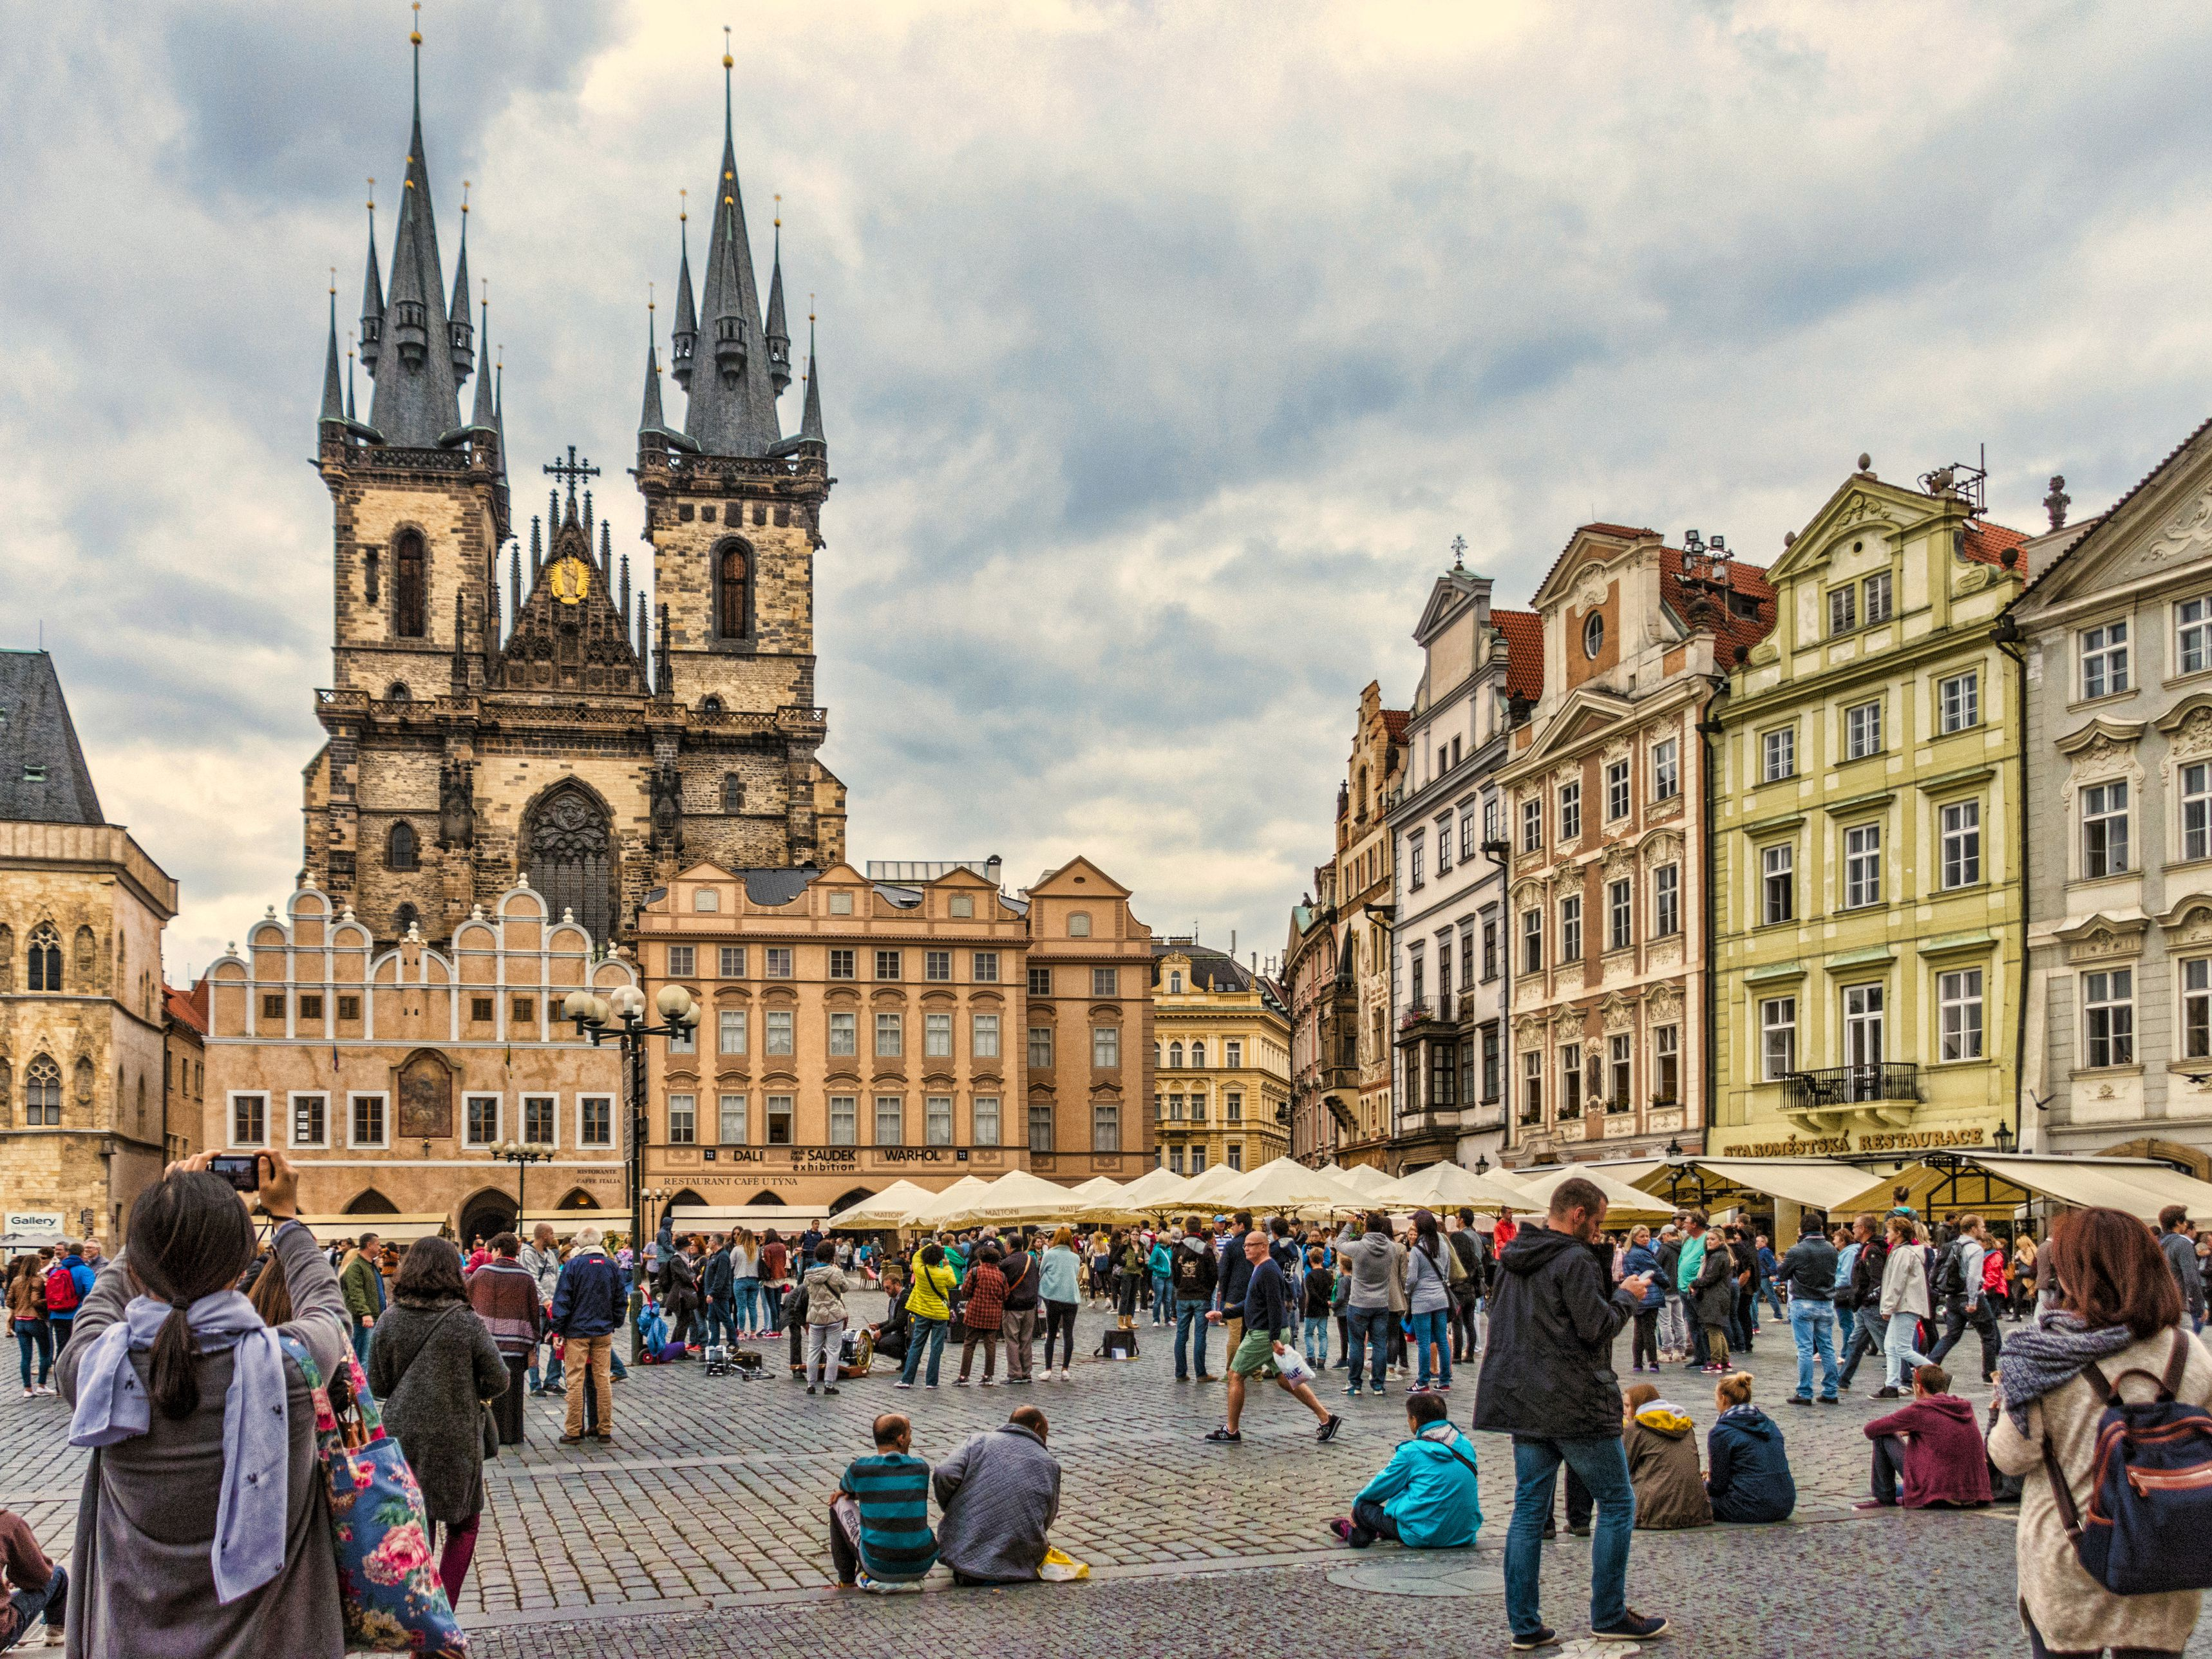 👑 Cele Mai Frumoase 10 Obiective Turistice din Praga